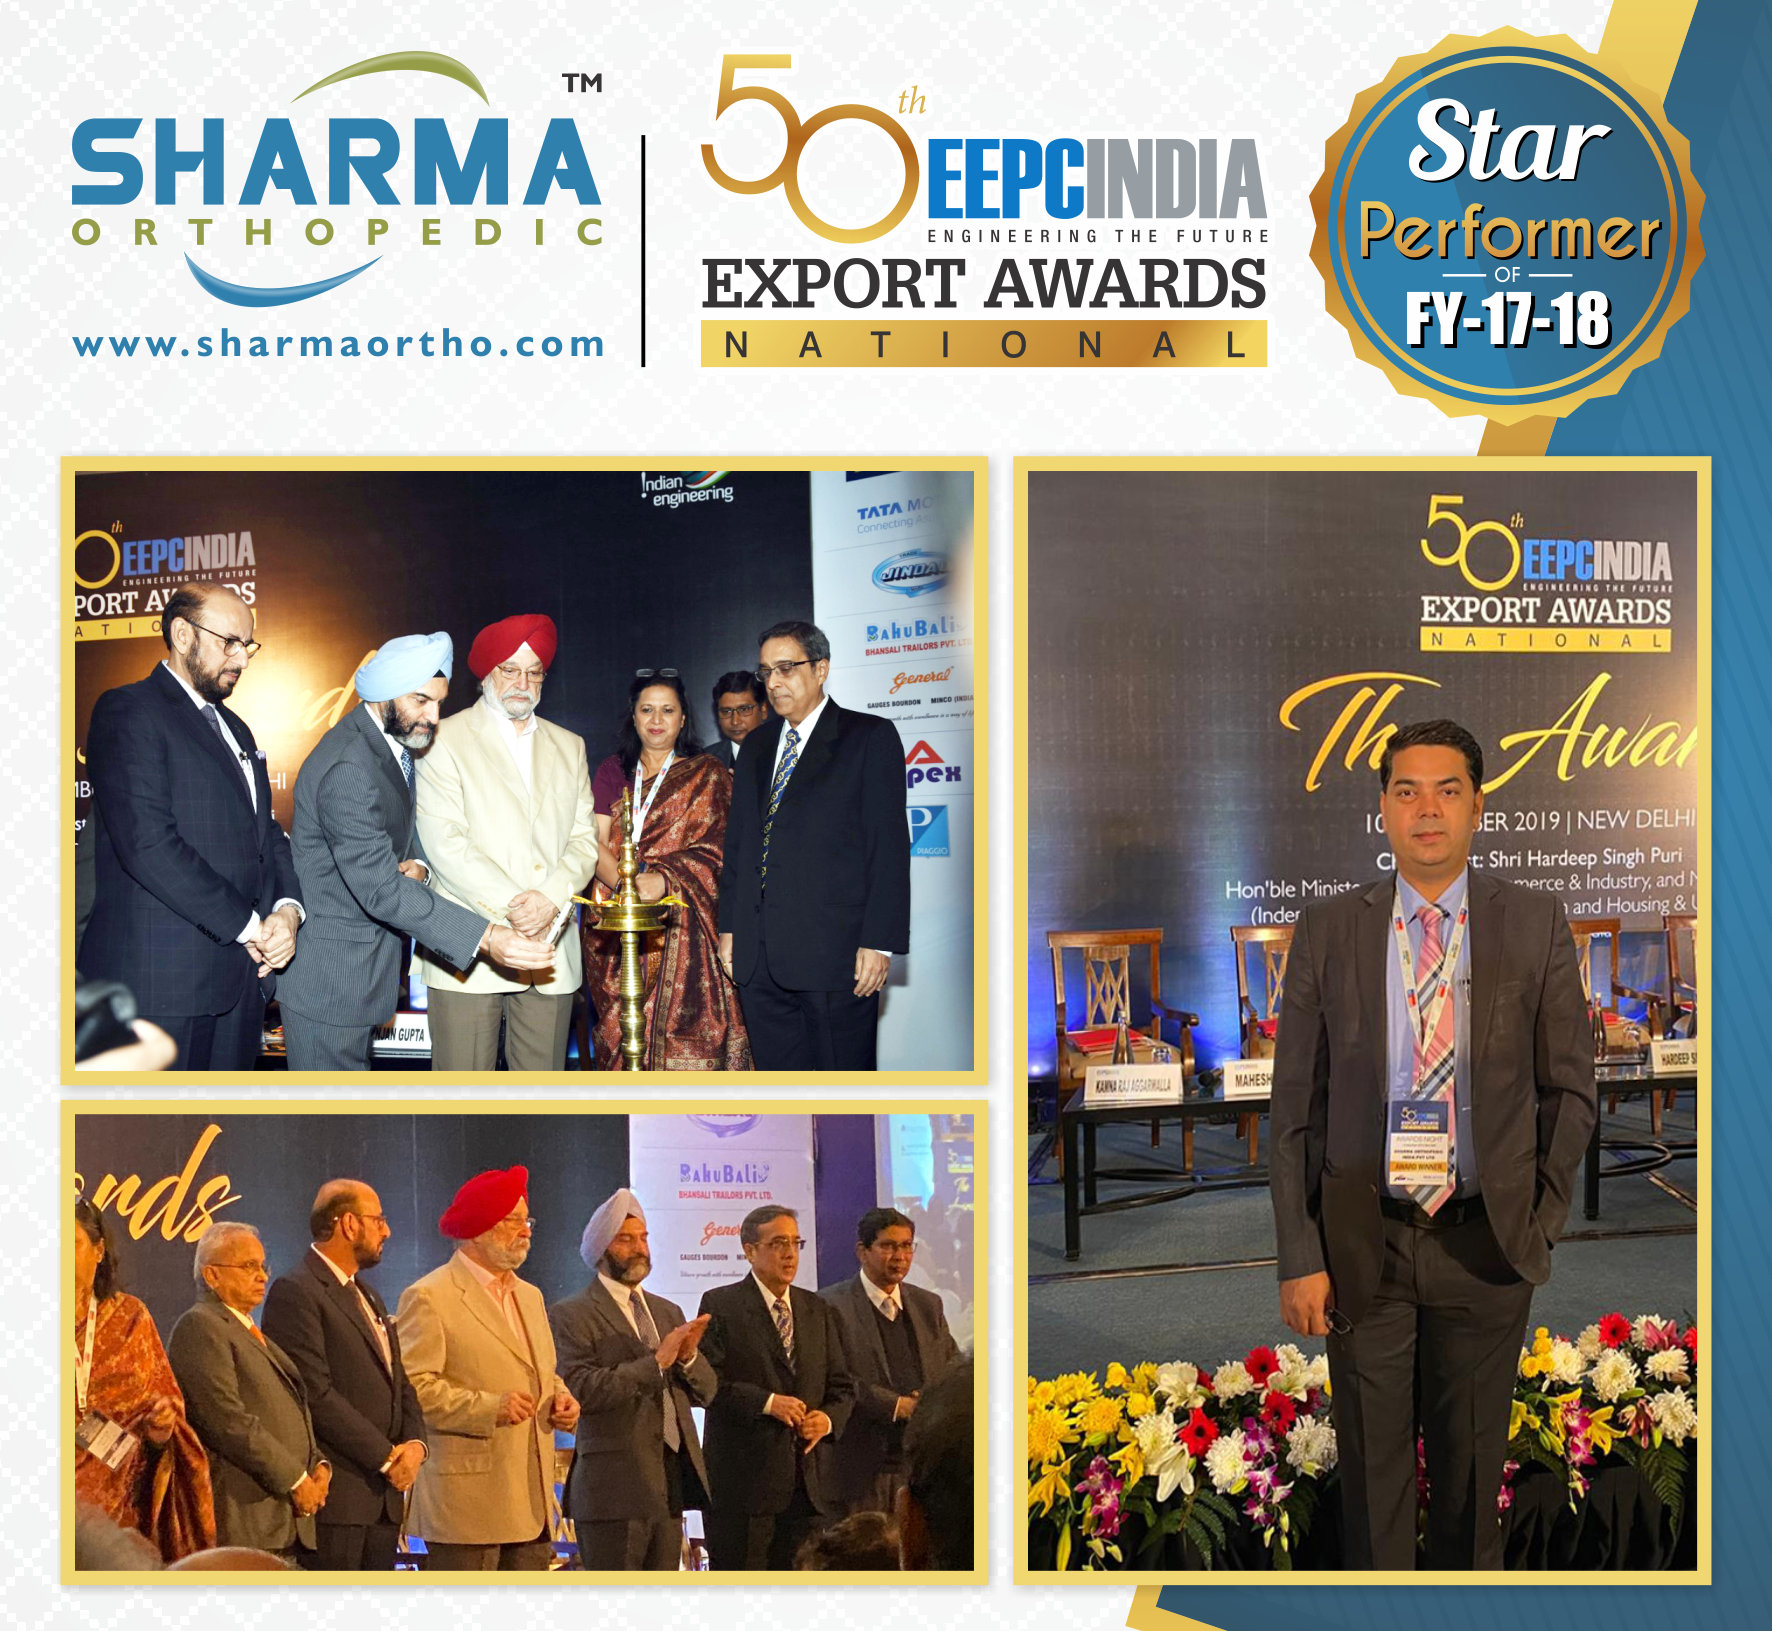 EEPC INDIA - EXPORT AWARDS